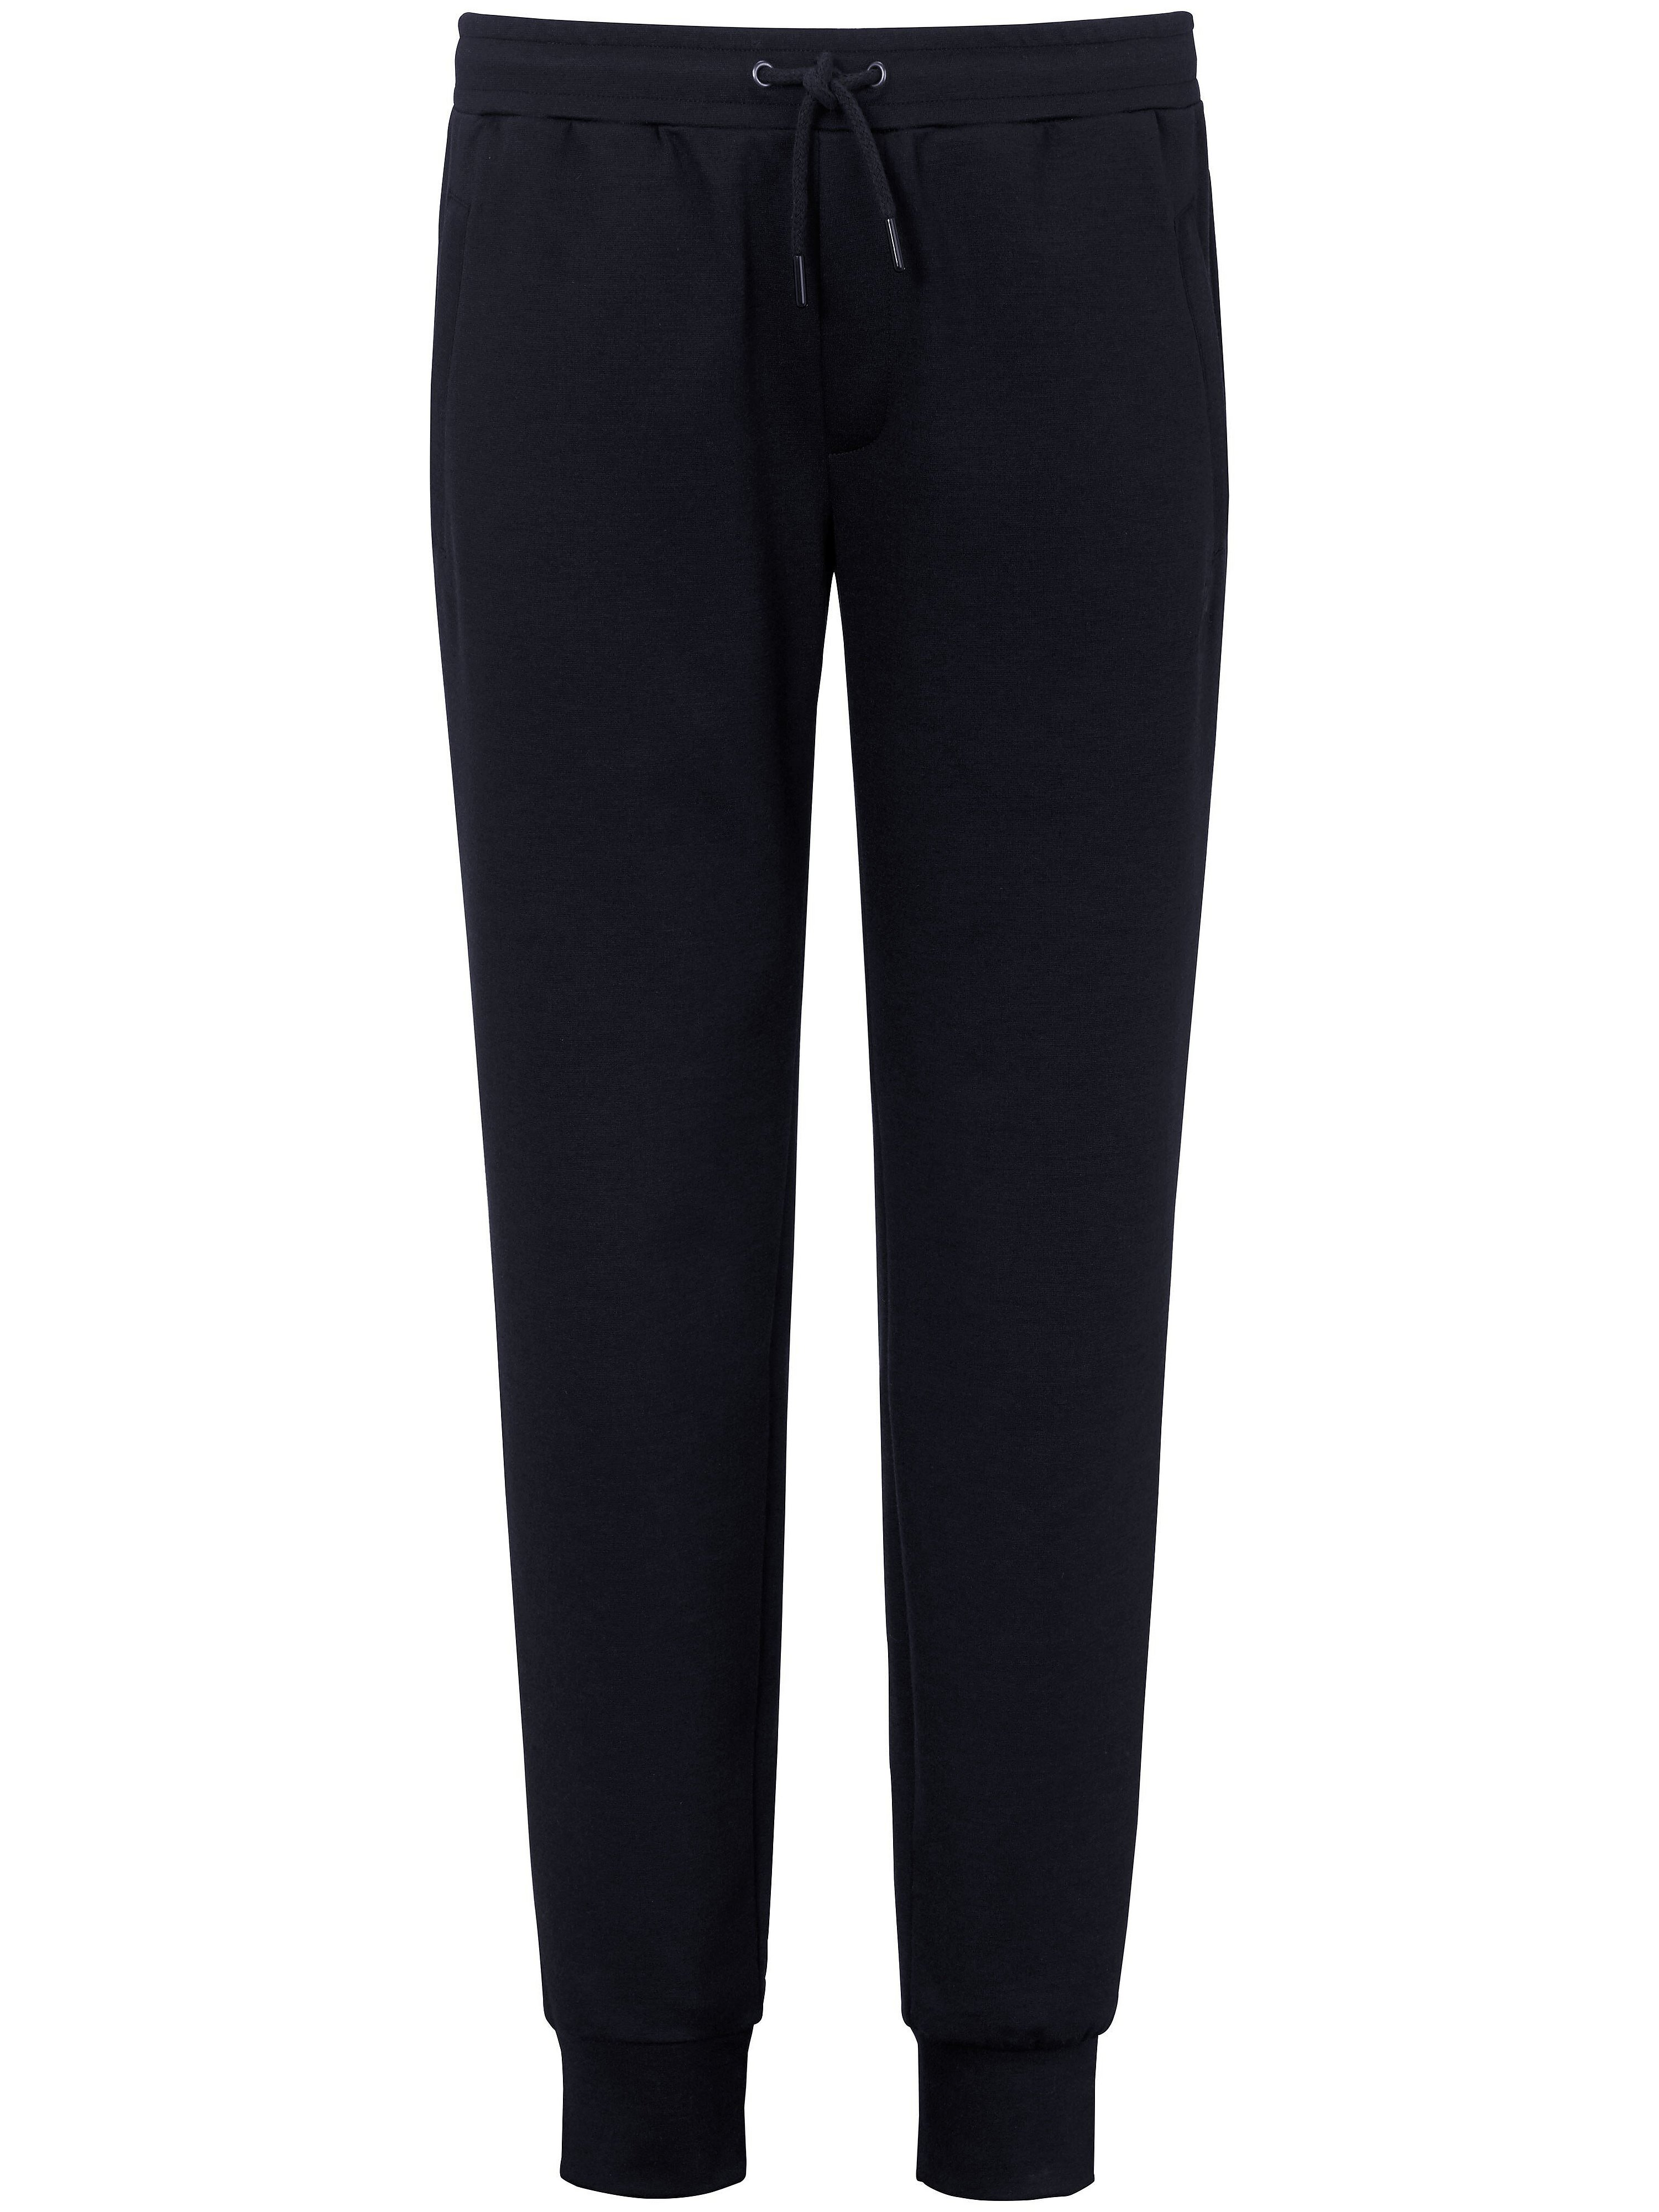 Le pantalon  Authentic Klein bleu taille 25